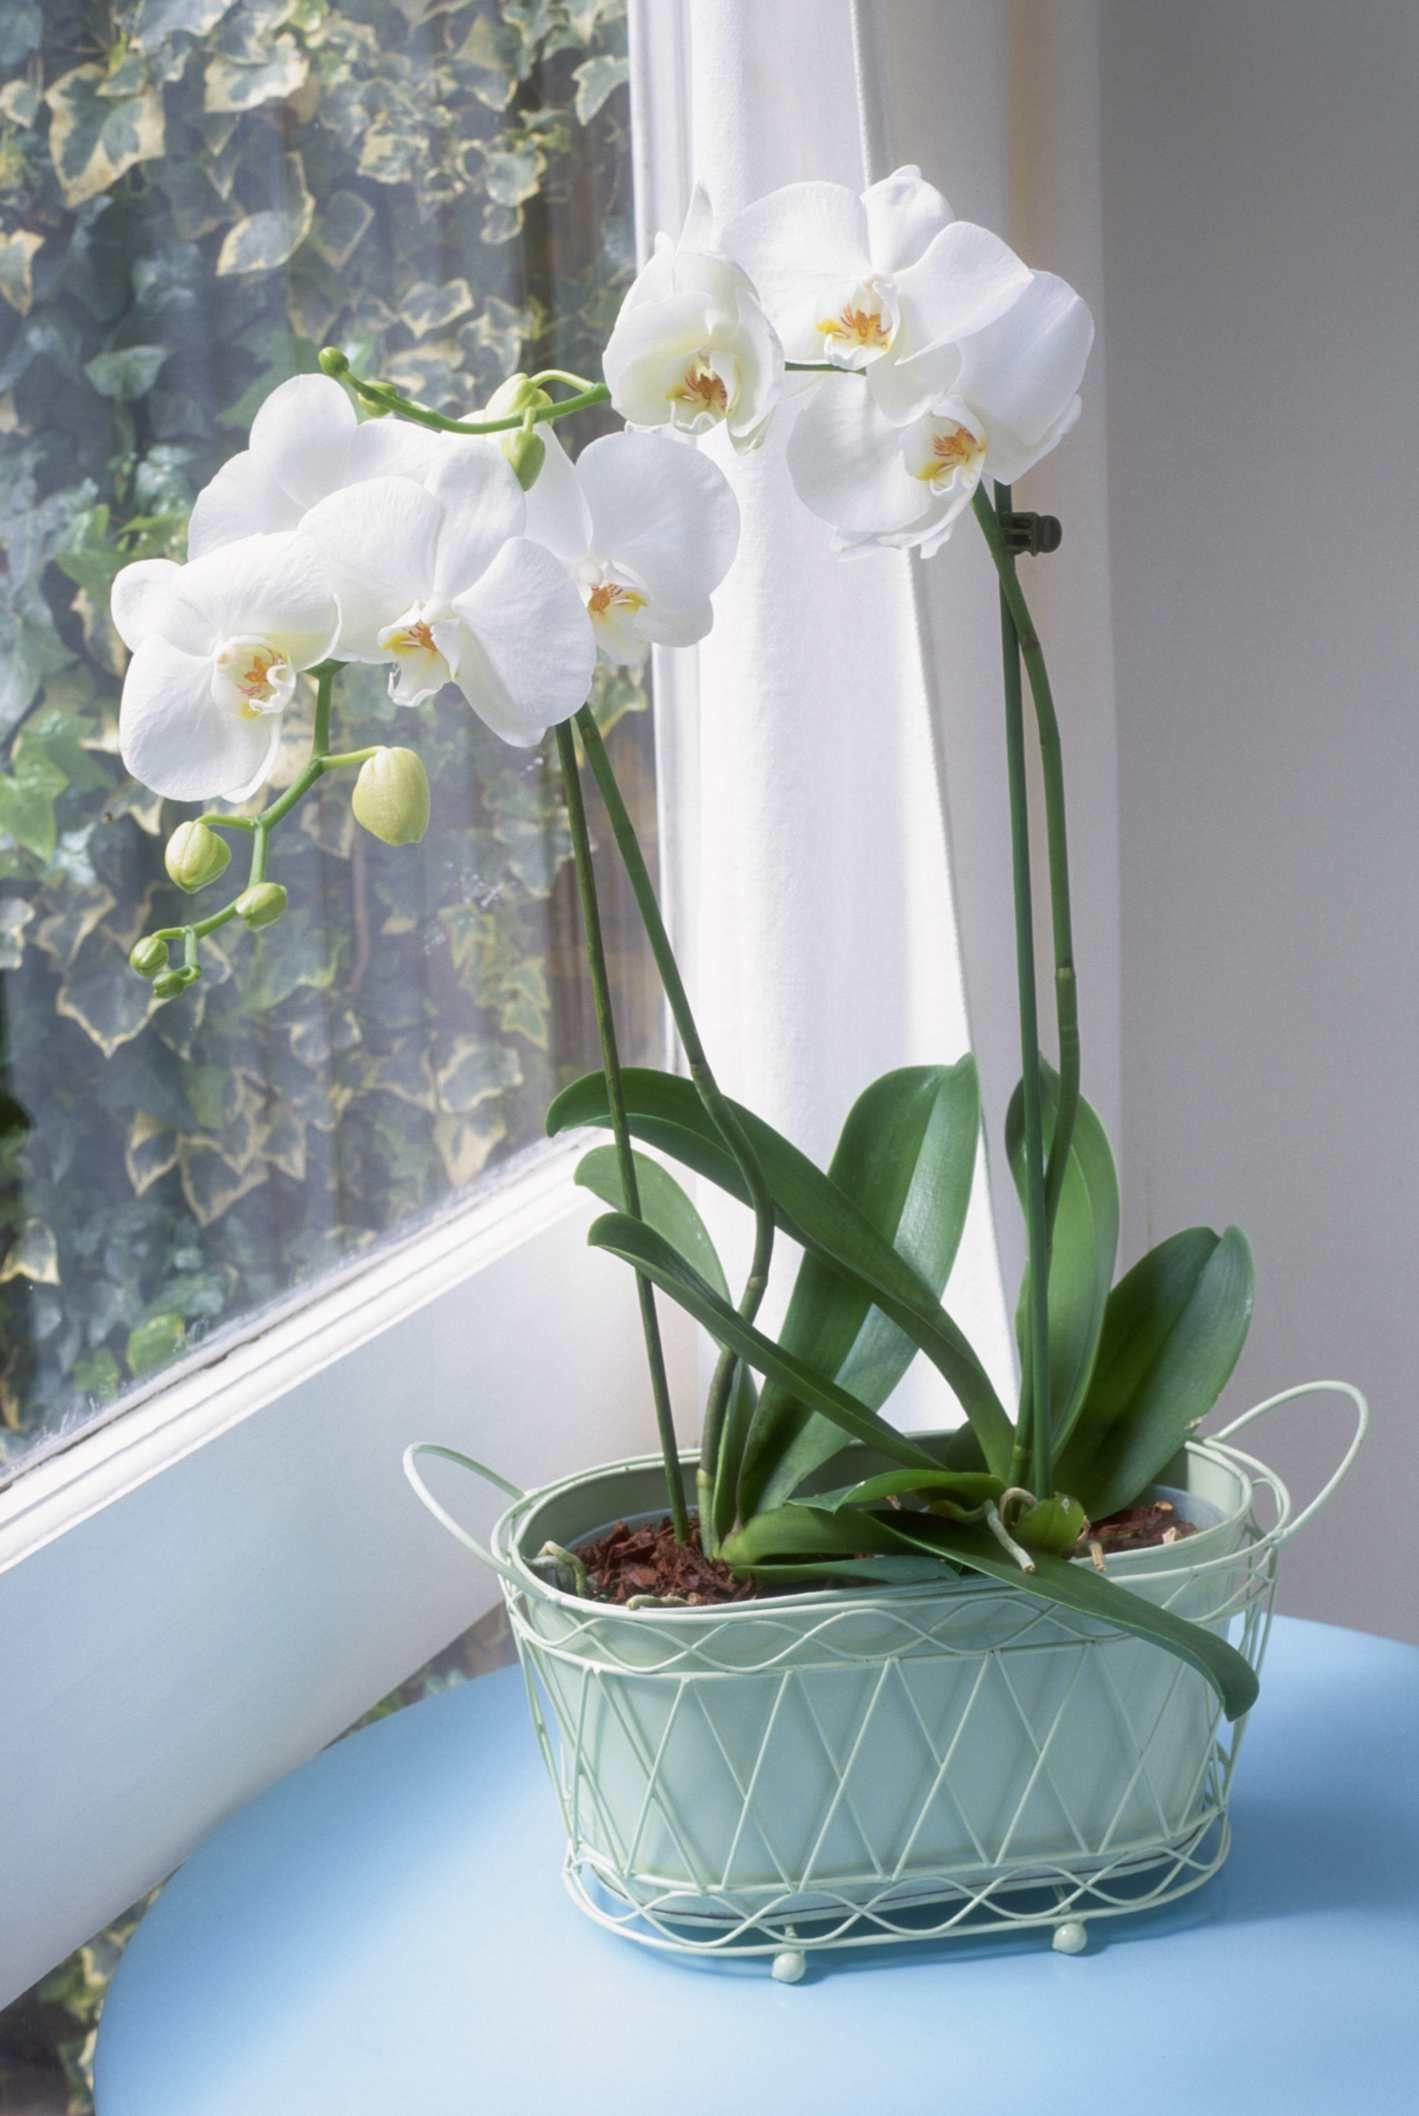 Discover Common Reasons Why An Orchid Won T Bloom And How To Fix Them With Images Orchids Garden Growing Orchids